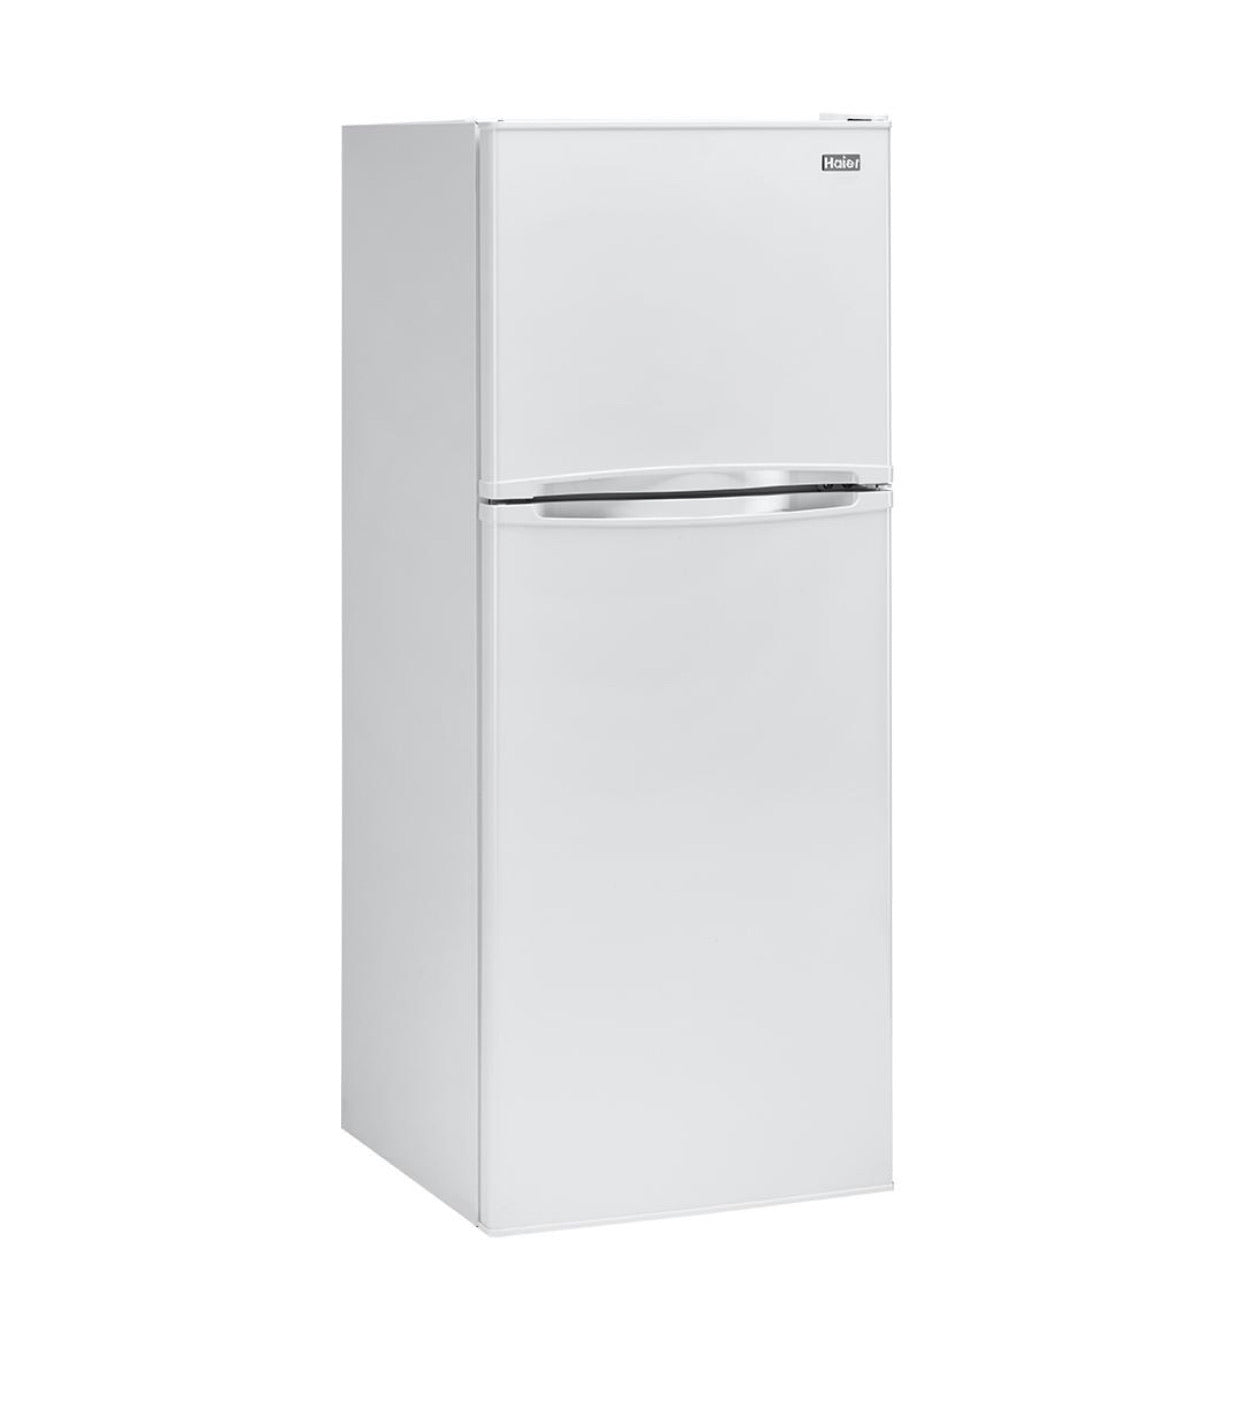 Haier 9.8 cu. ft. Top Freezer Refrigerator in White model HA10TG21SW